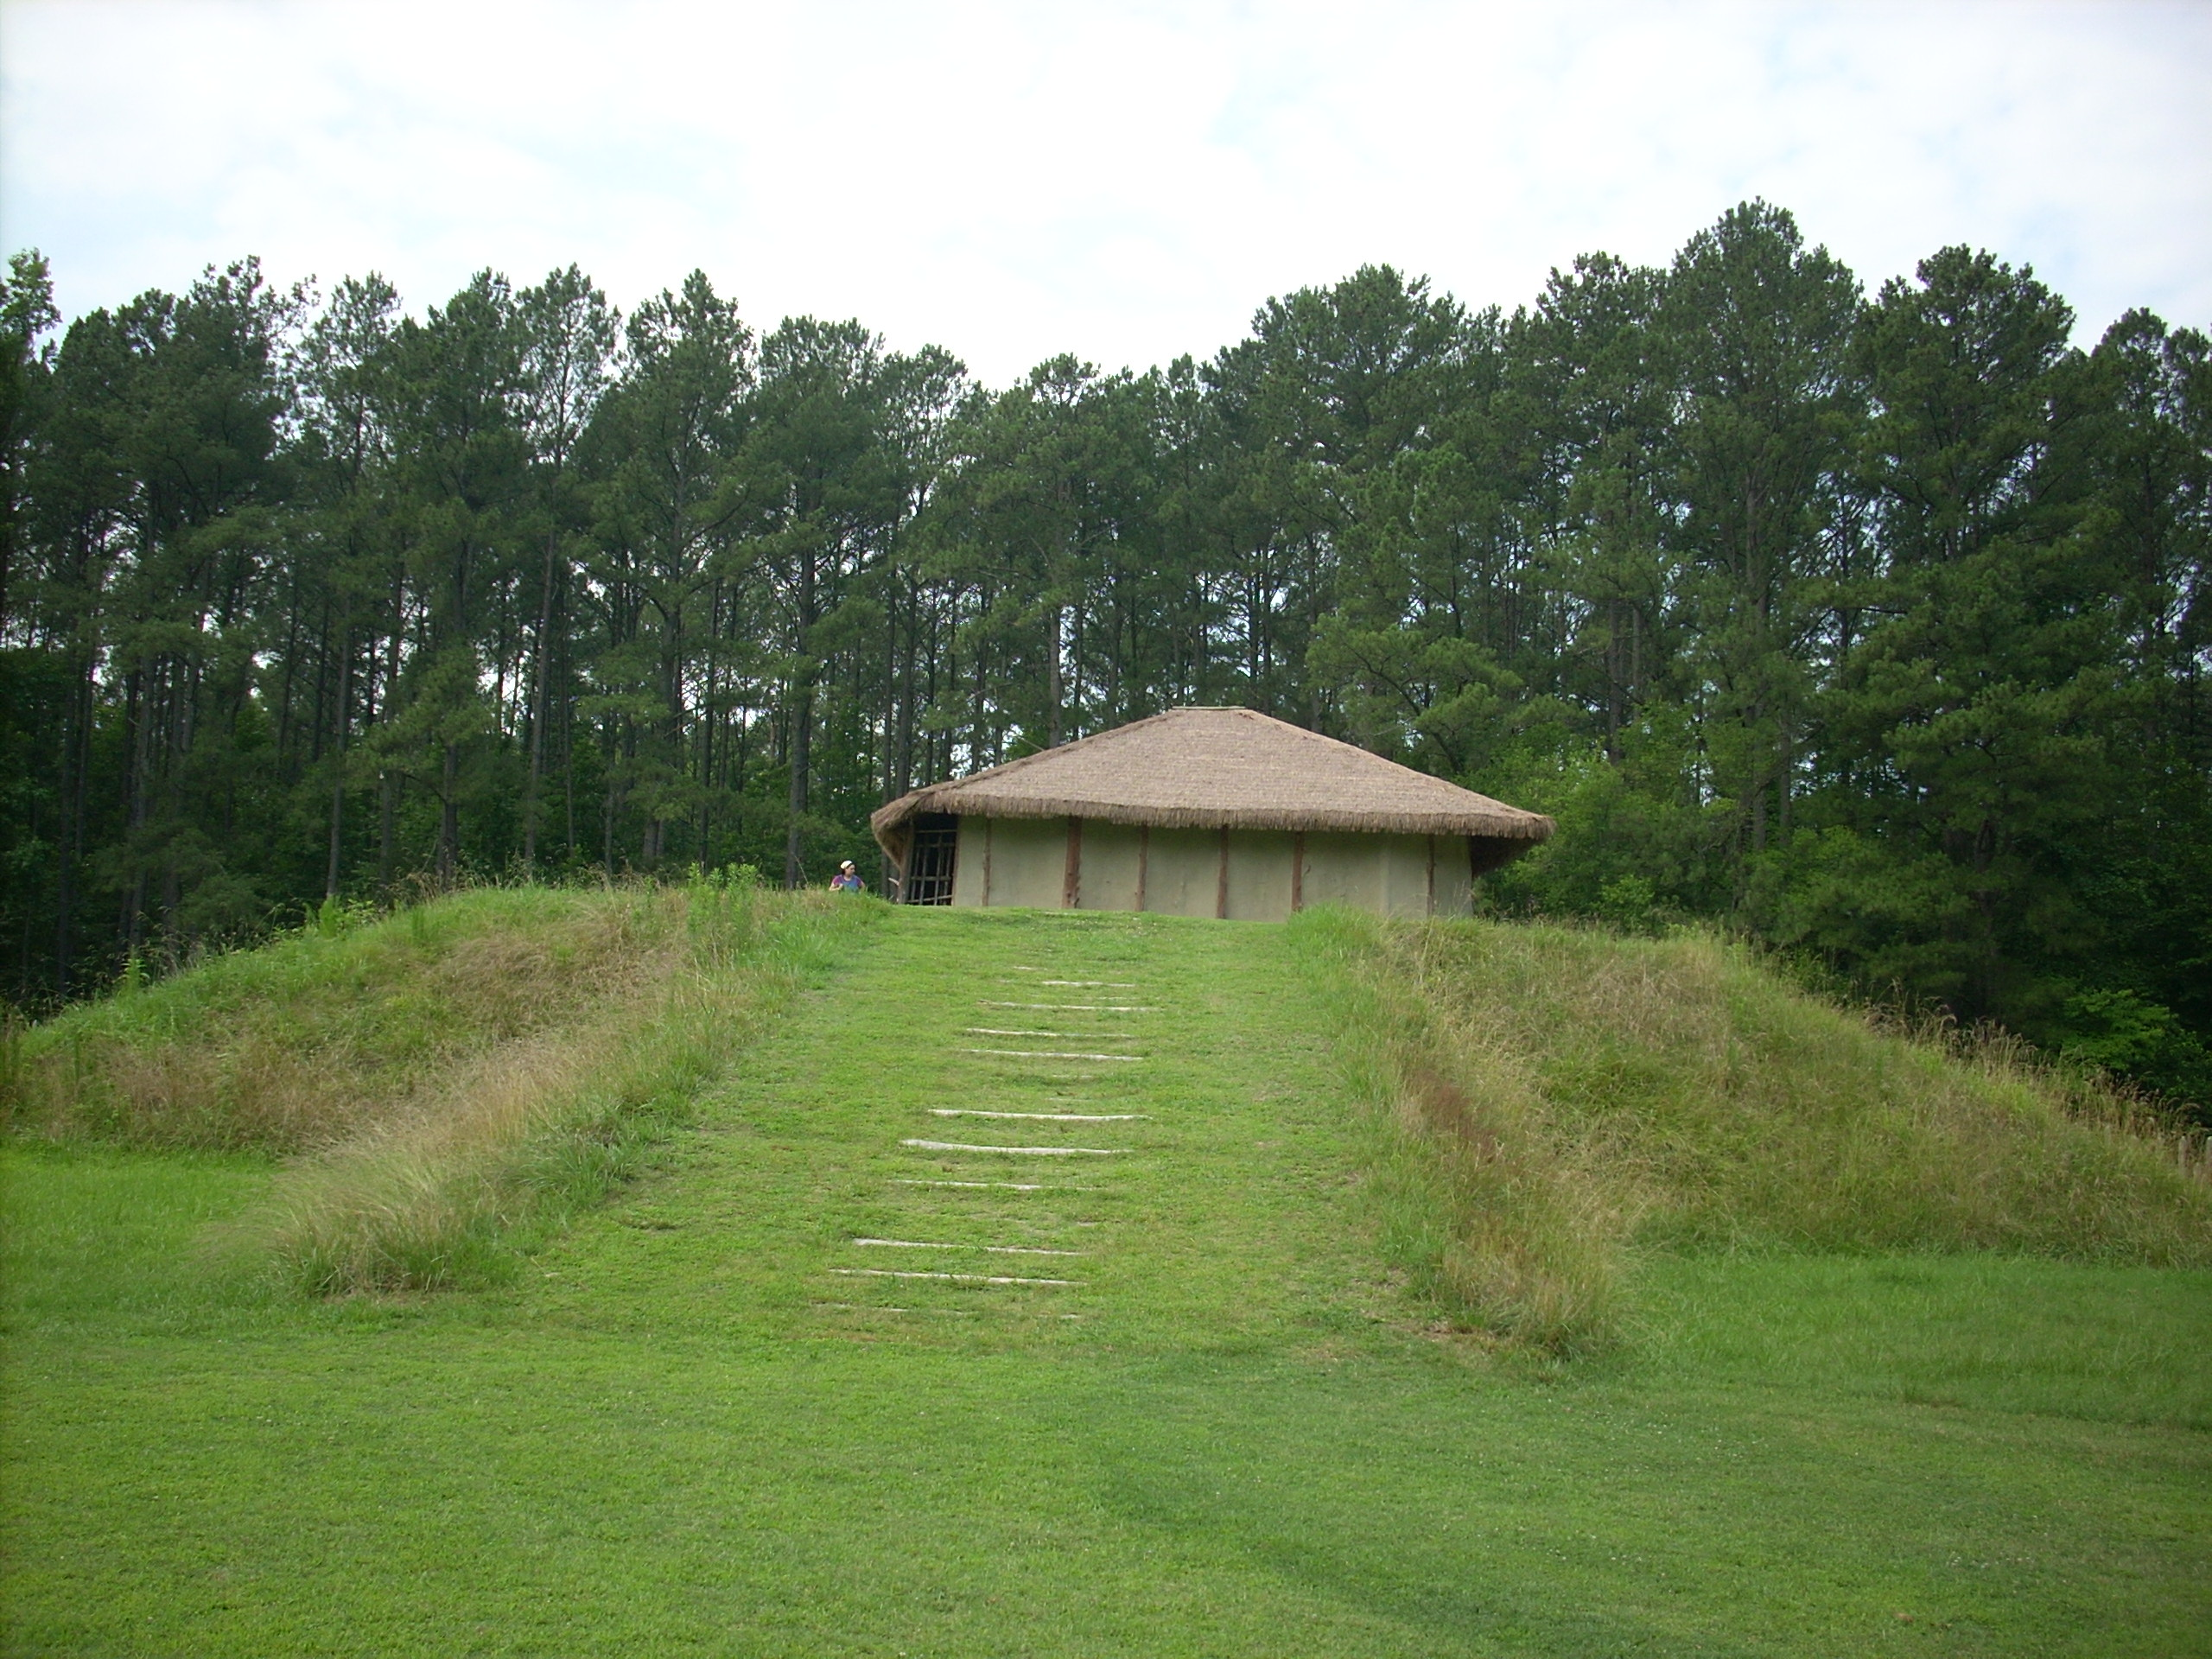 File:Town Creek Indian Mound3.JPG - Wikimedia Commonstown creek town